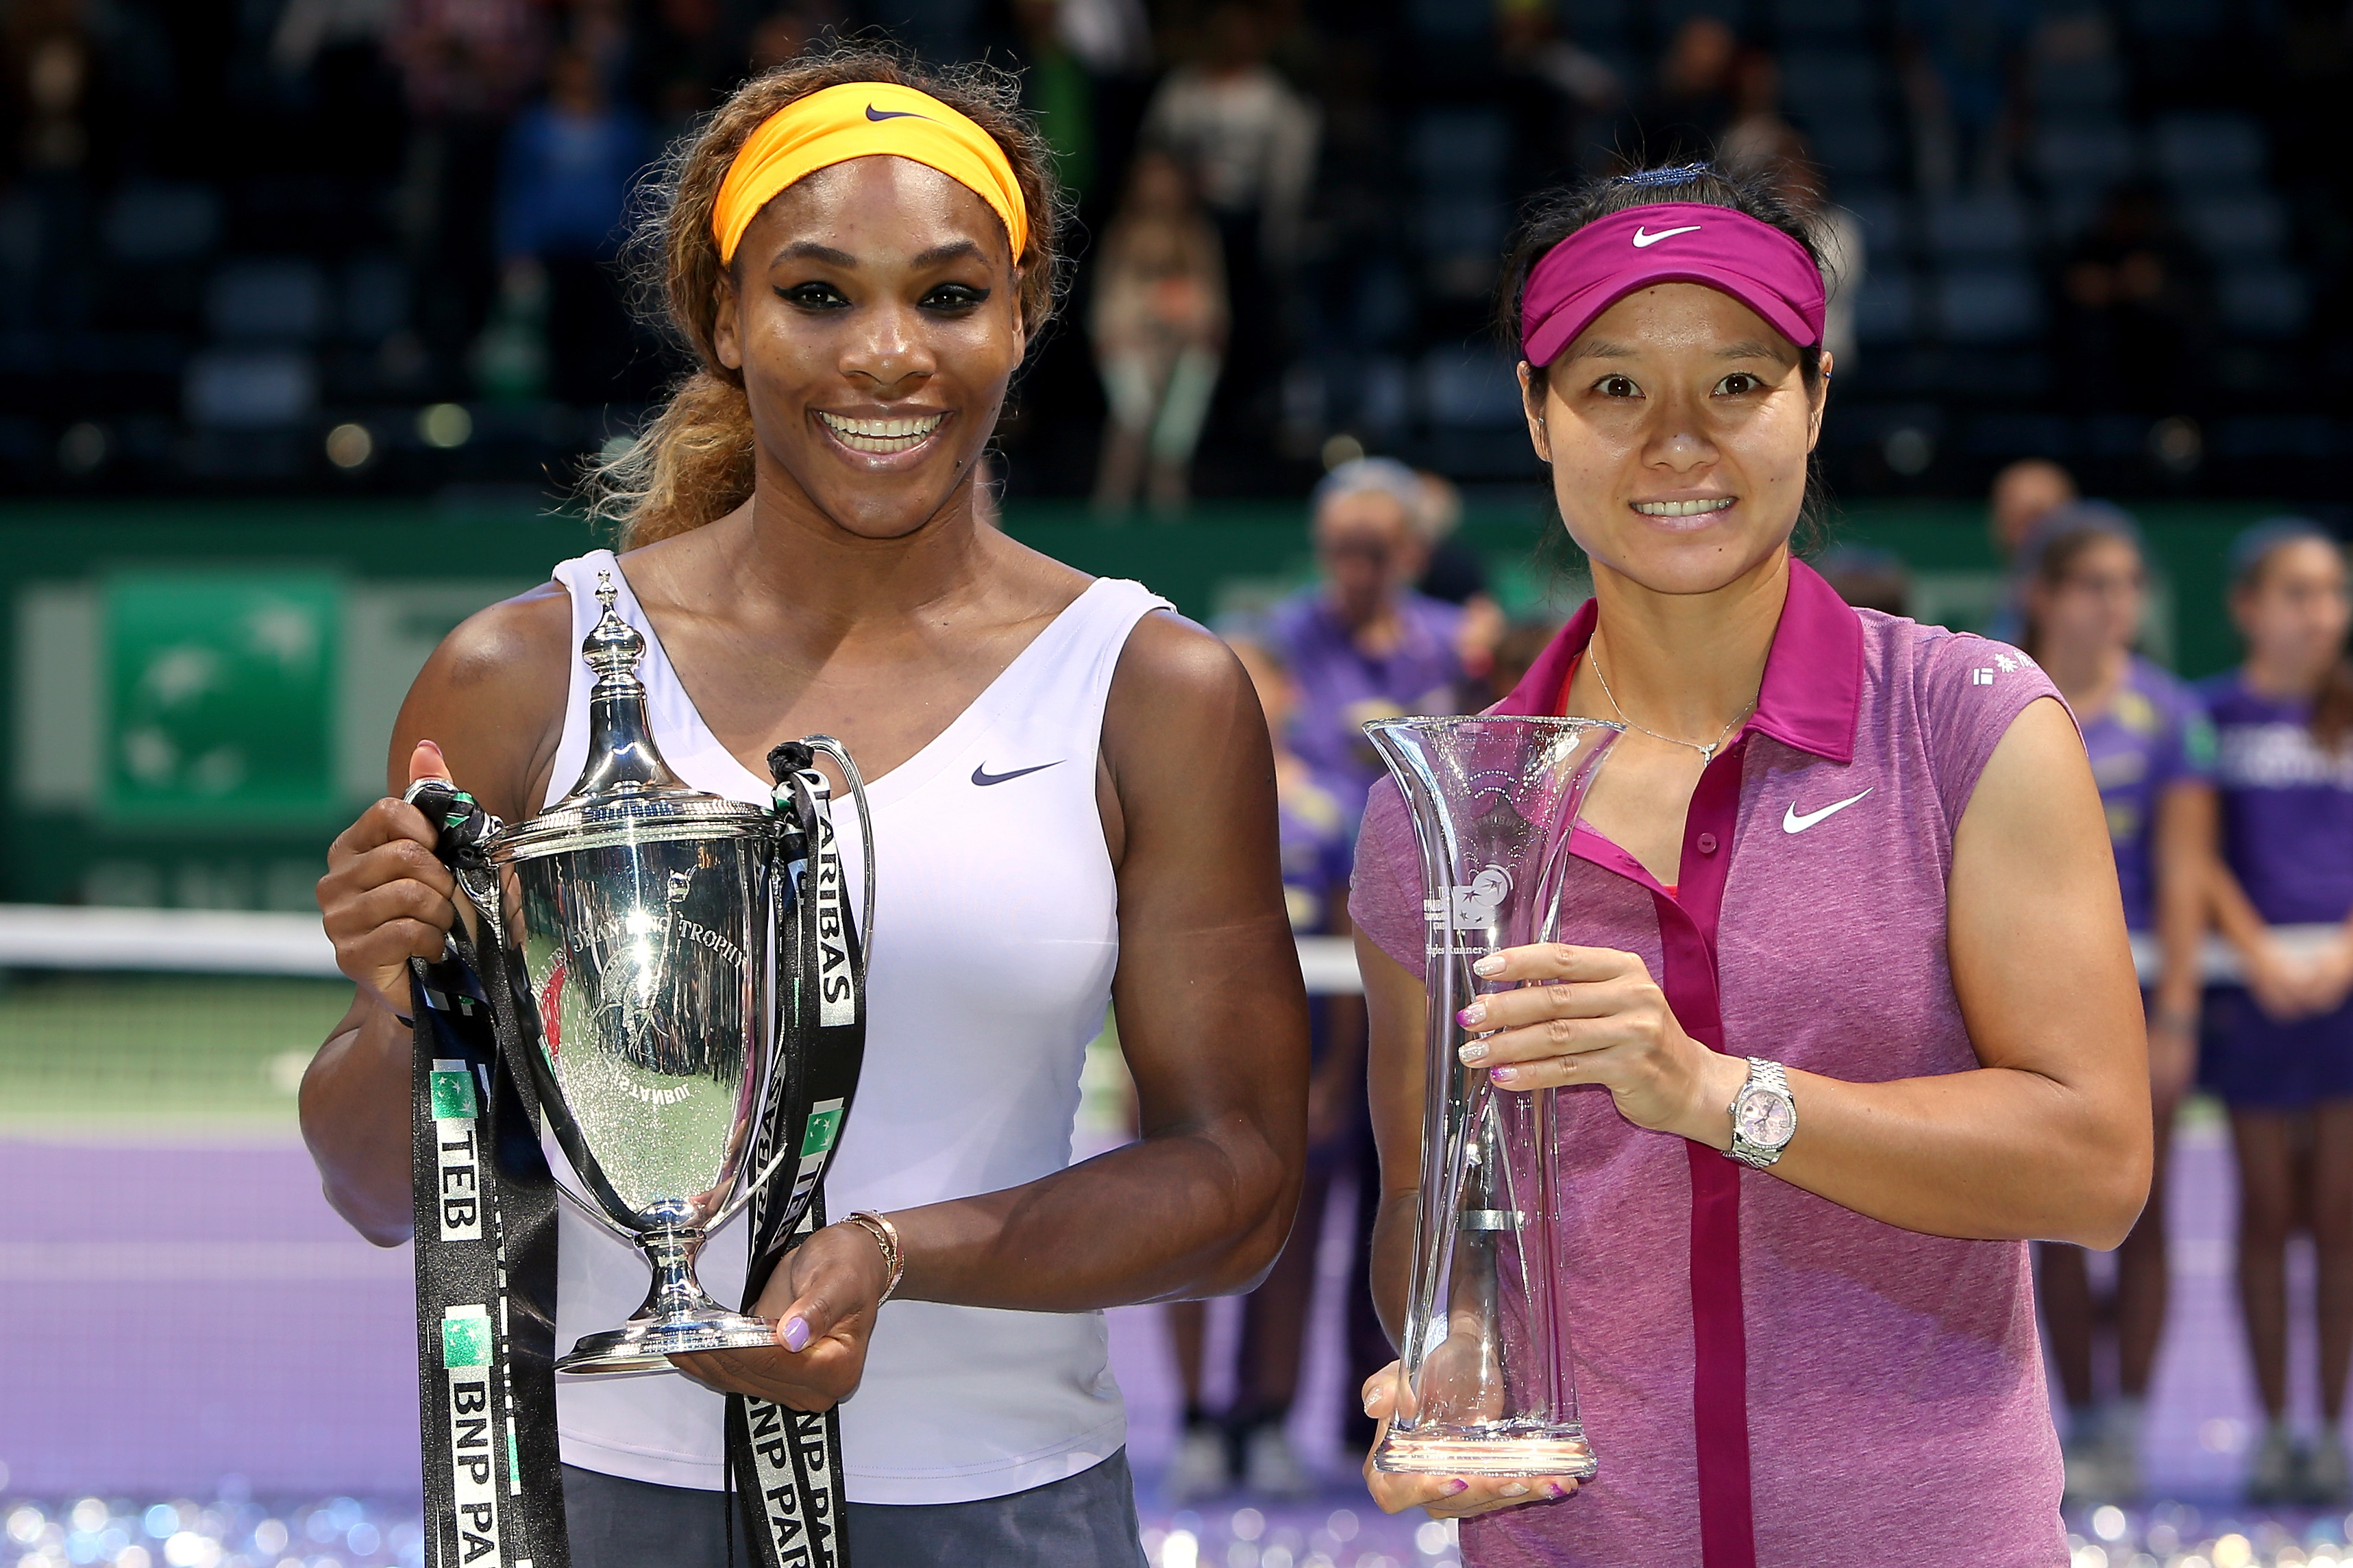 Serena Williams won her fourth WTA Finals title, beating Li Na in three sets in the final.